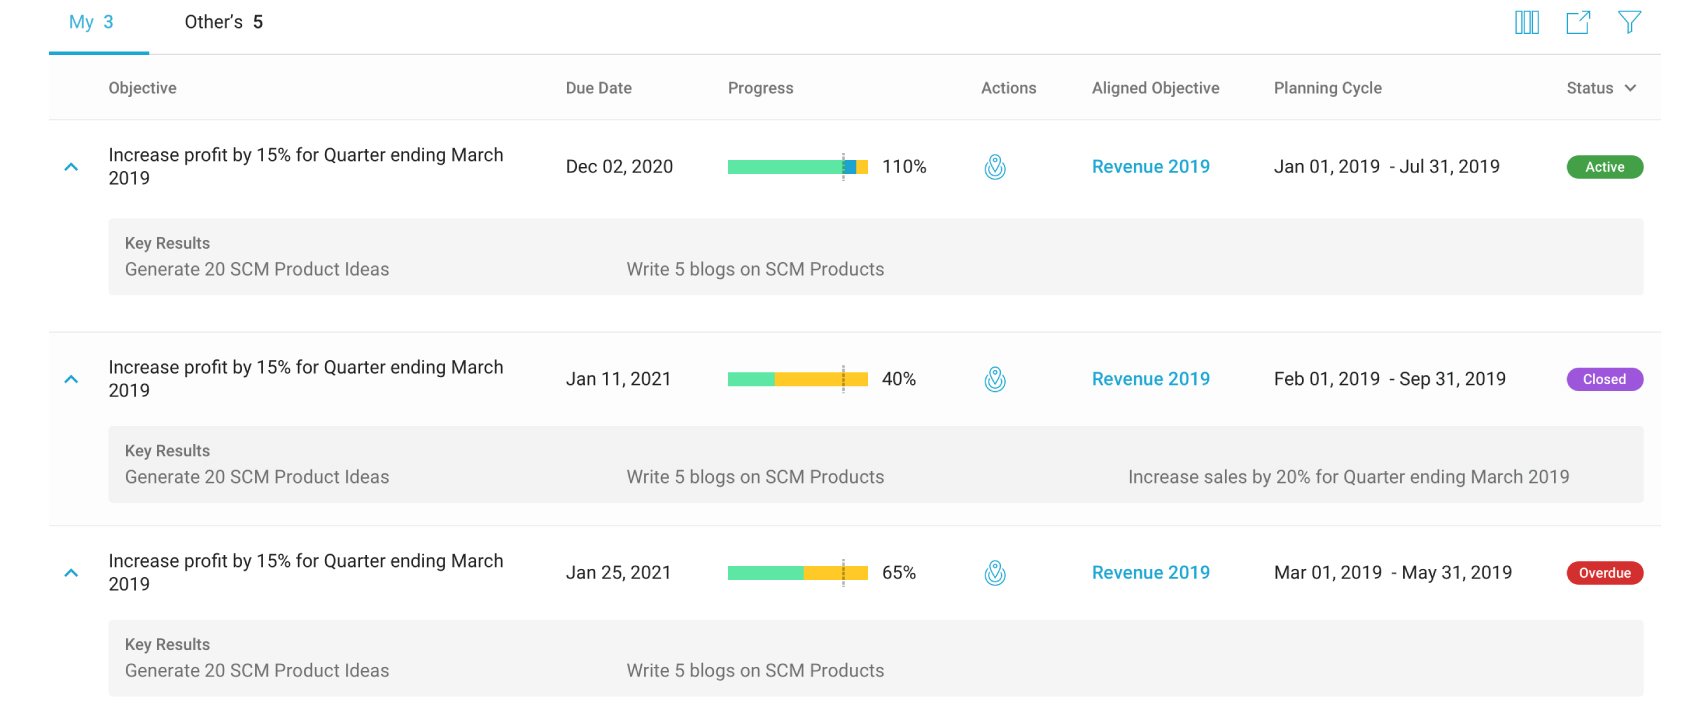 OKR management system- Objectives View